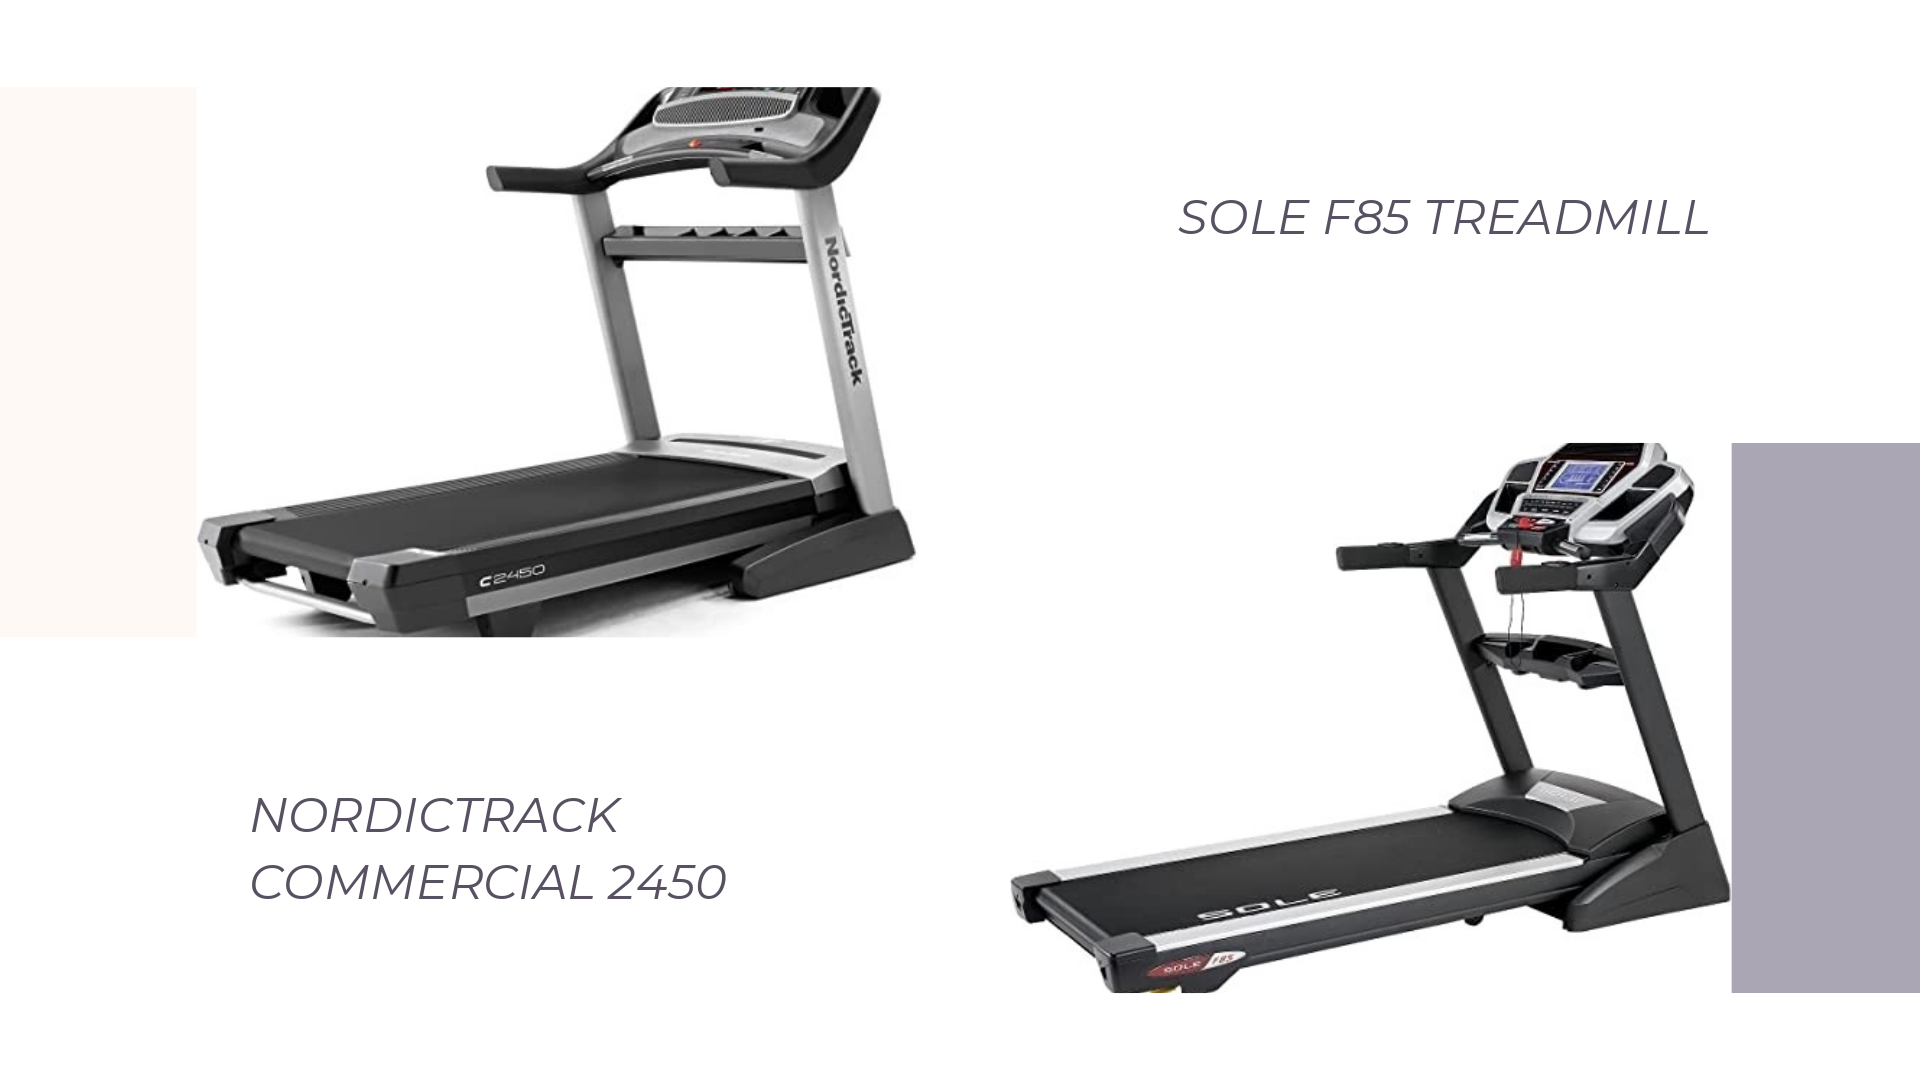 NordicTrack 2450 vs. Sole F85 reviews: Folding treadmill comparison